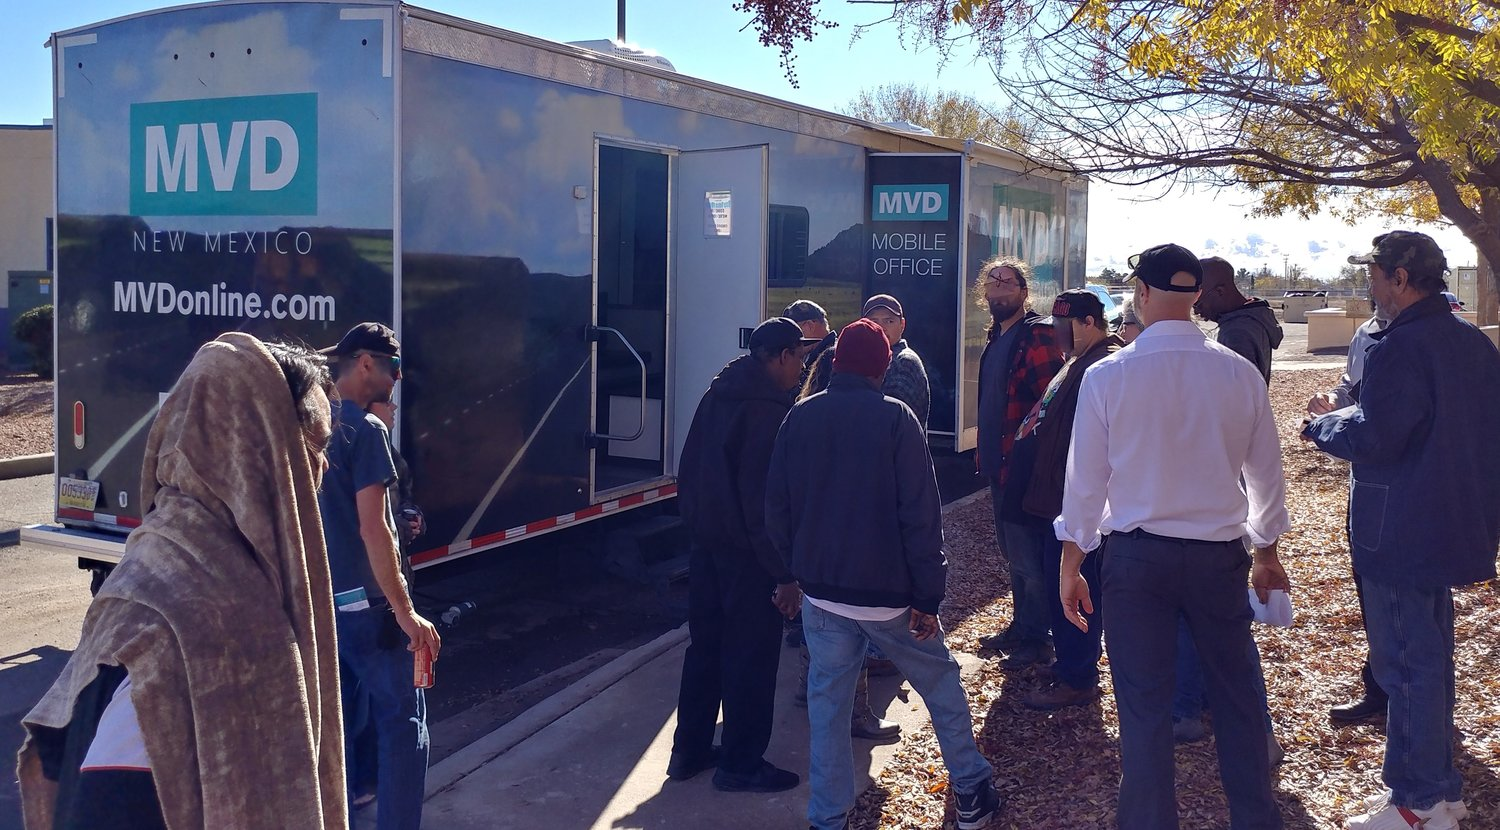 Clients of Mesilla Valley Community of Hope (MVCH) and residents of its Camp Hope Tent City line up for services at the state Motor Vehicle Department mobile unit to get IDs Friday, Nov. 22, at MVCH. New Mexico Department of Workforce Solutions Sec. Bill McCamley, (in the white shirt) a former Las Cruces state representative and Doña Ana County commissioner, talks to participants in the event.